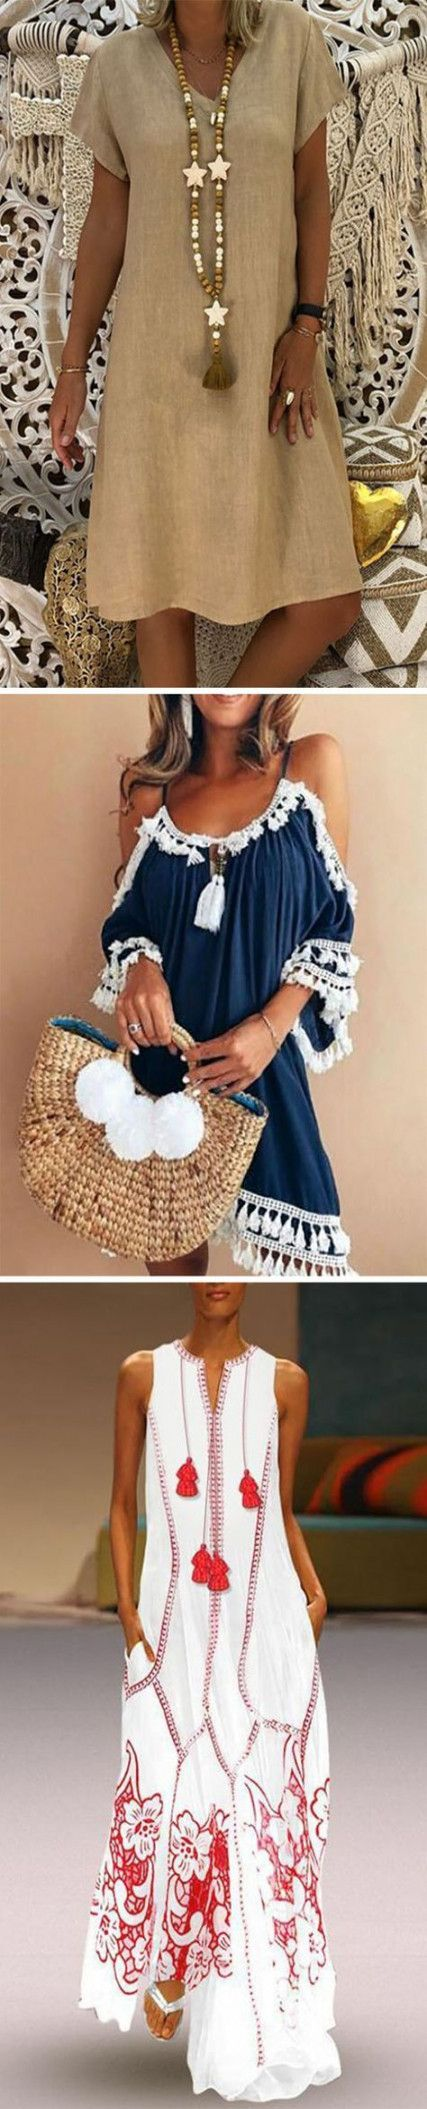 54 Ideas Fashion Style Outfits Woman Spring Summer For 2019 #fashion